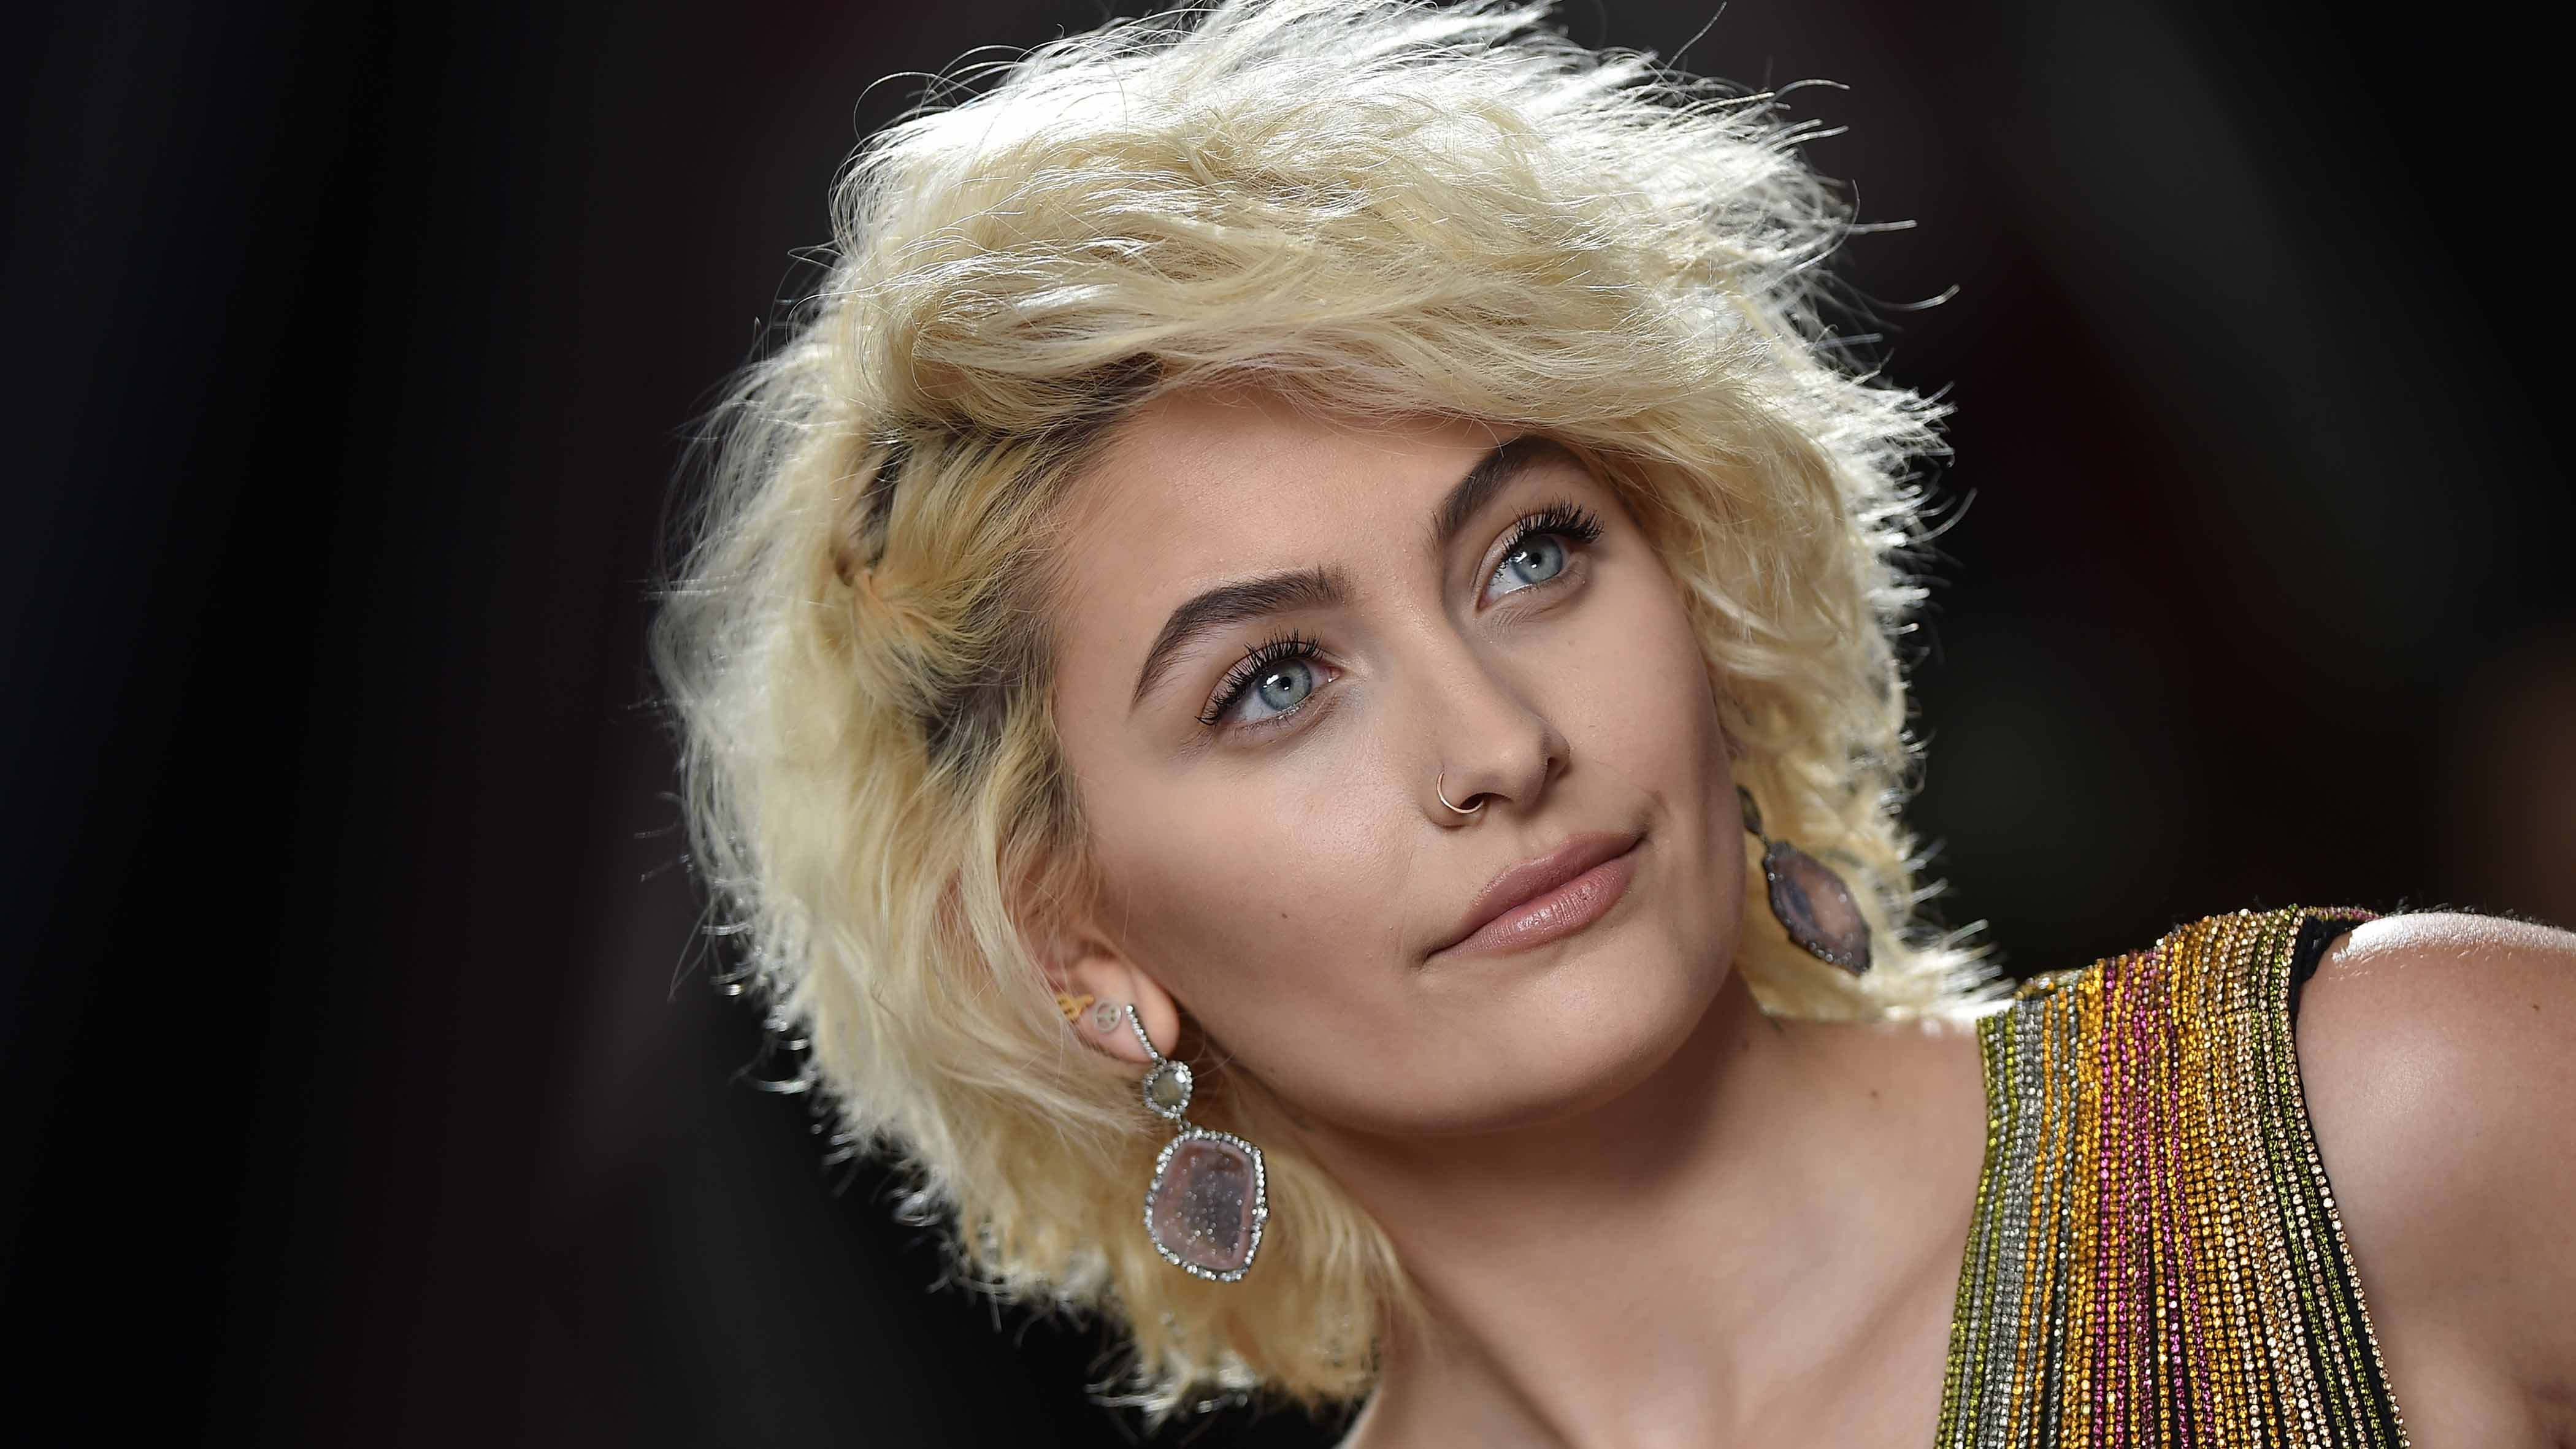 Paris Jackson signs on to become a model